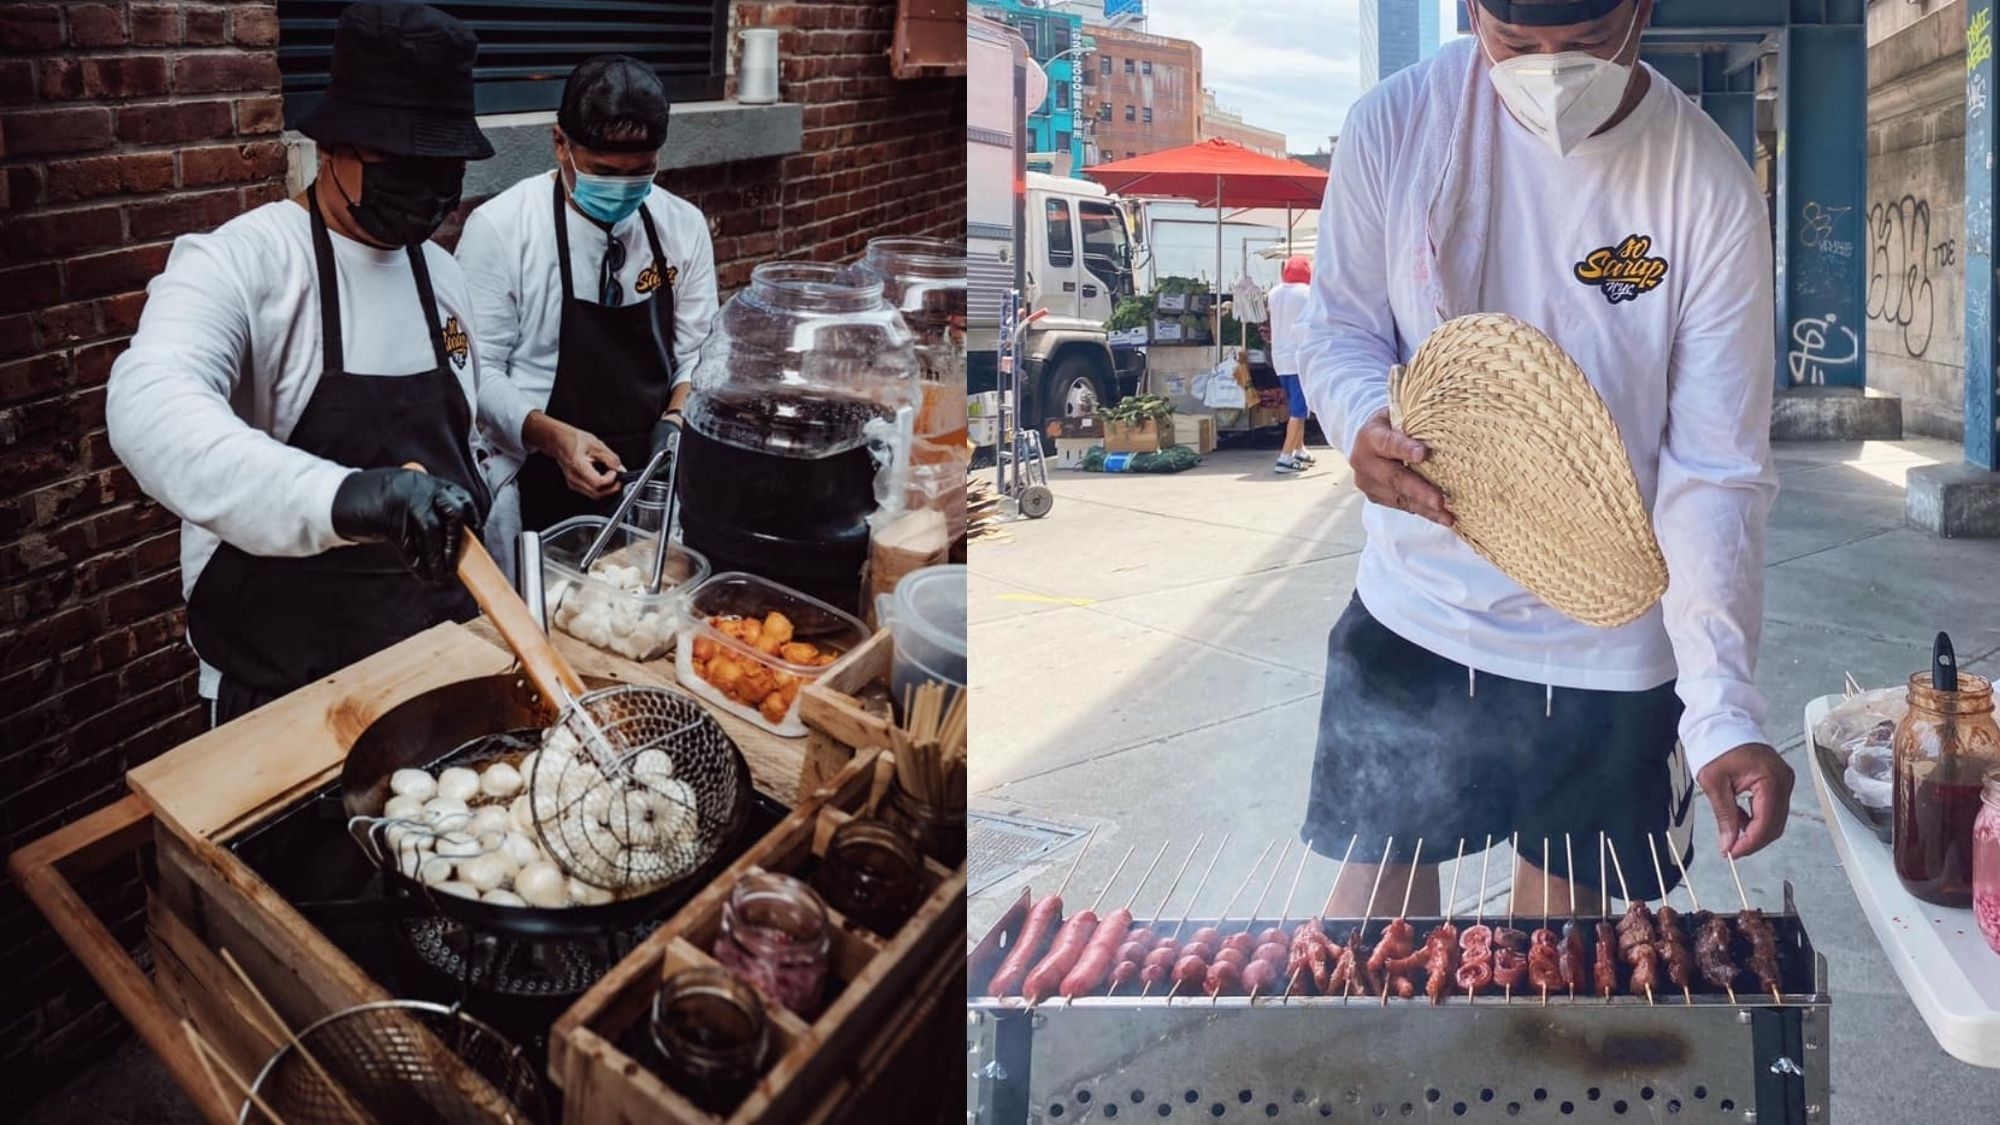 Going international; Pinoy's street food on wheels invades New York